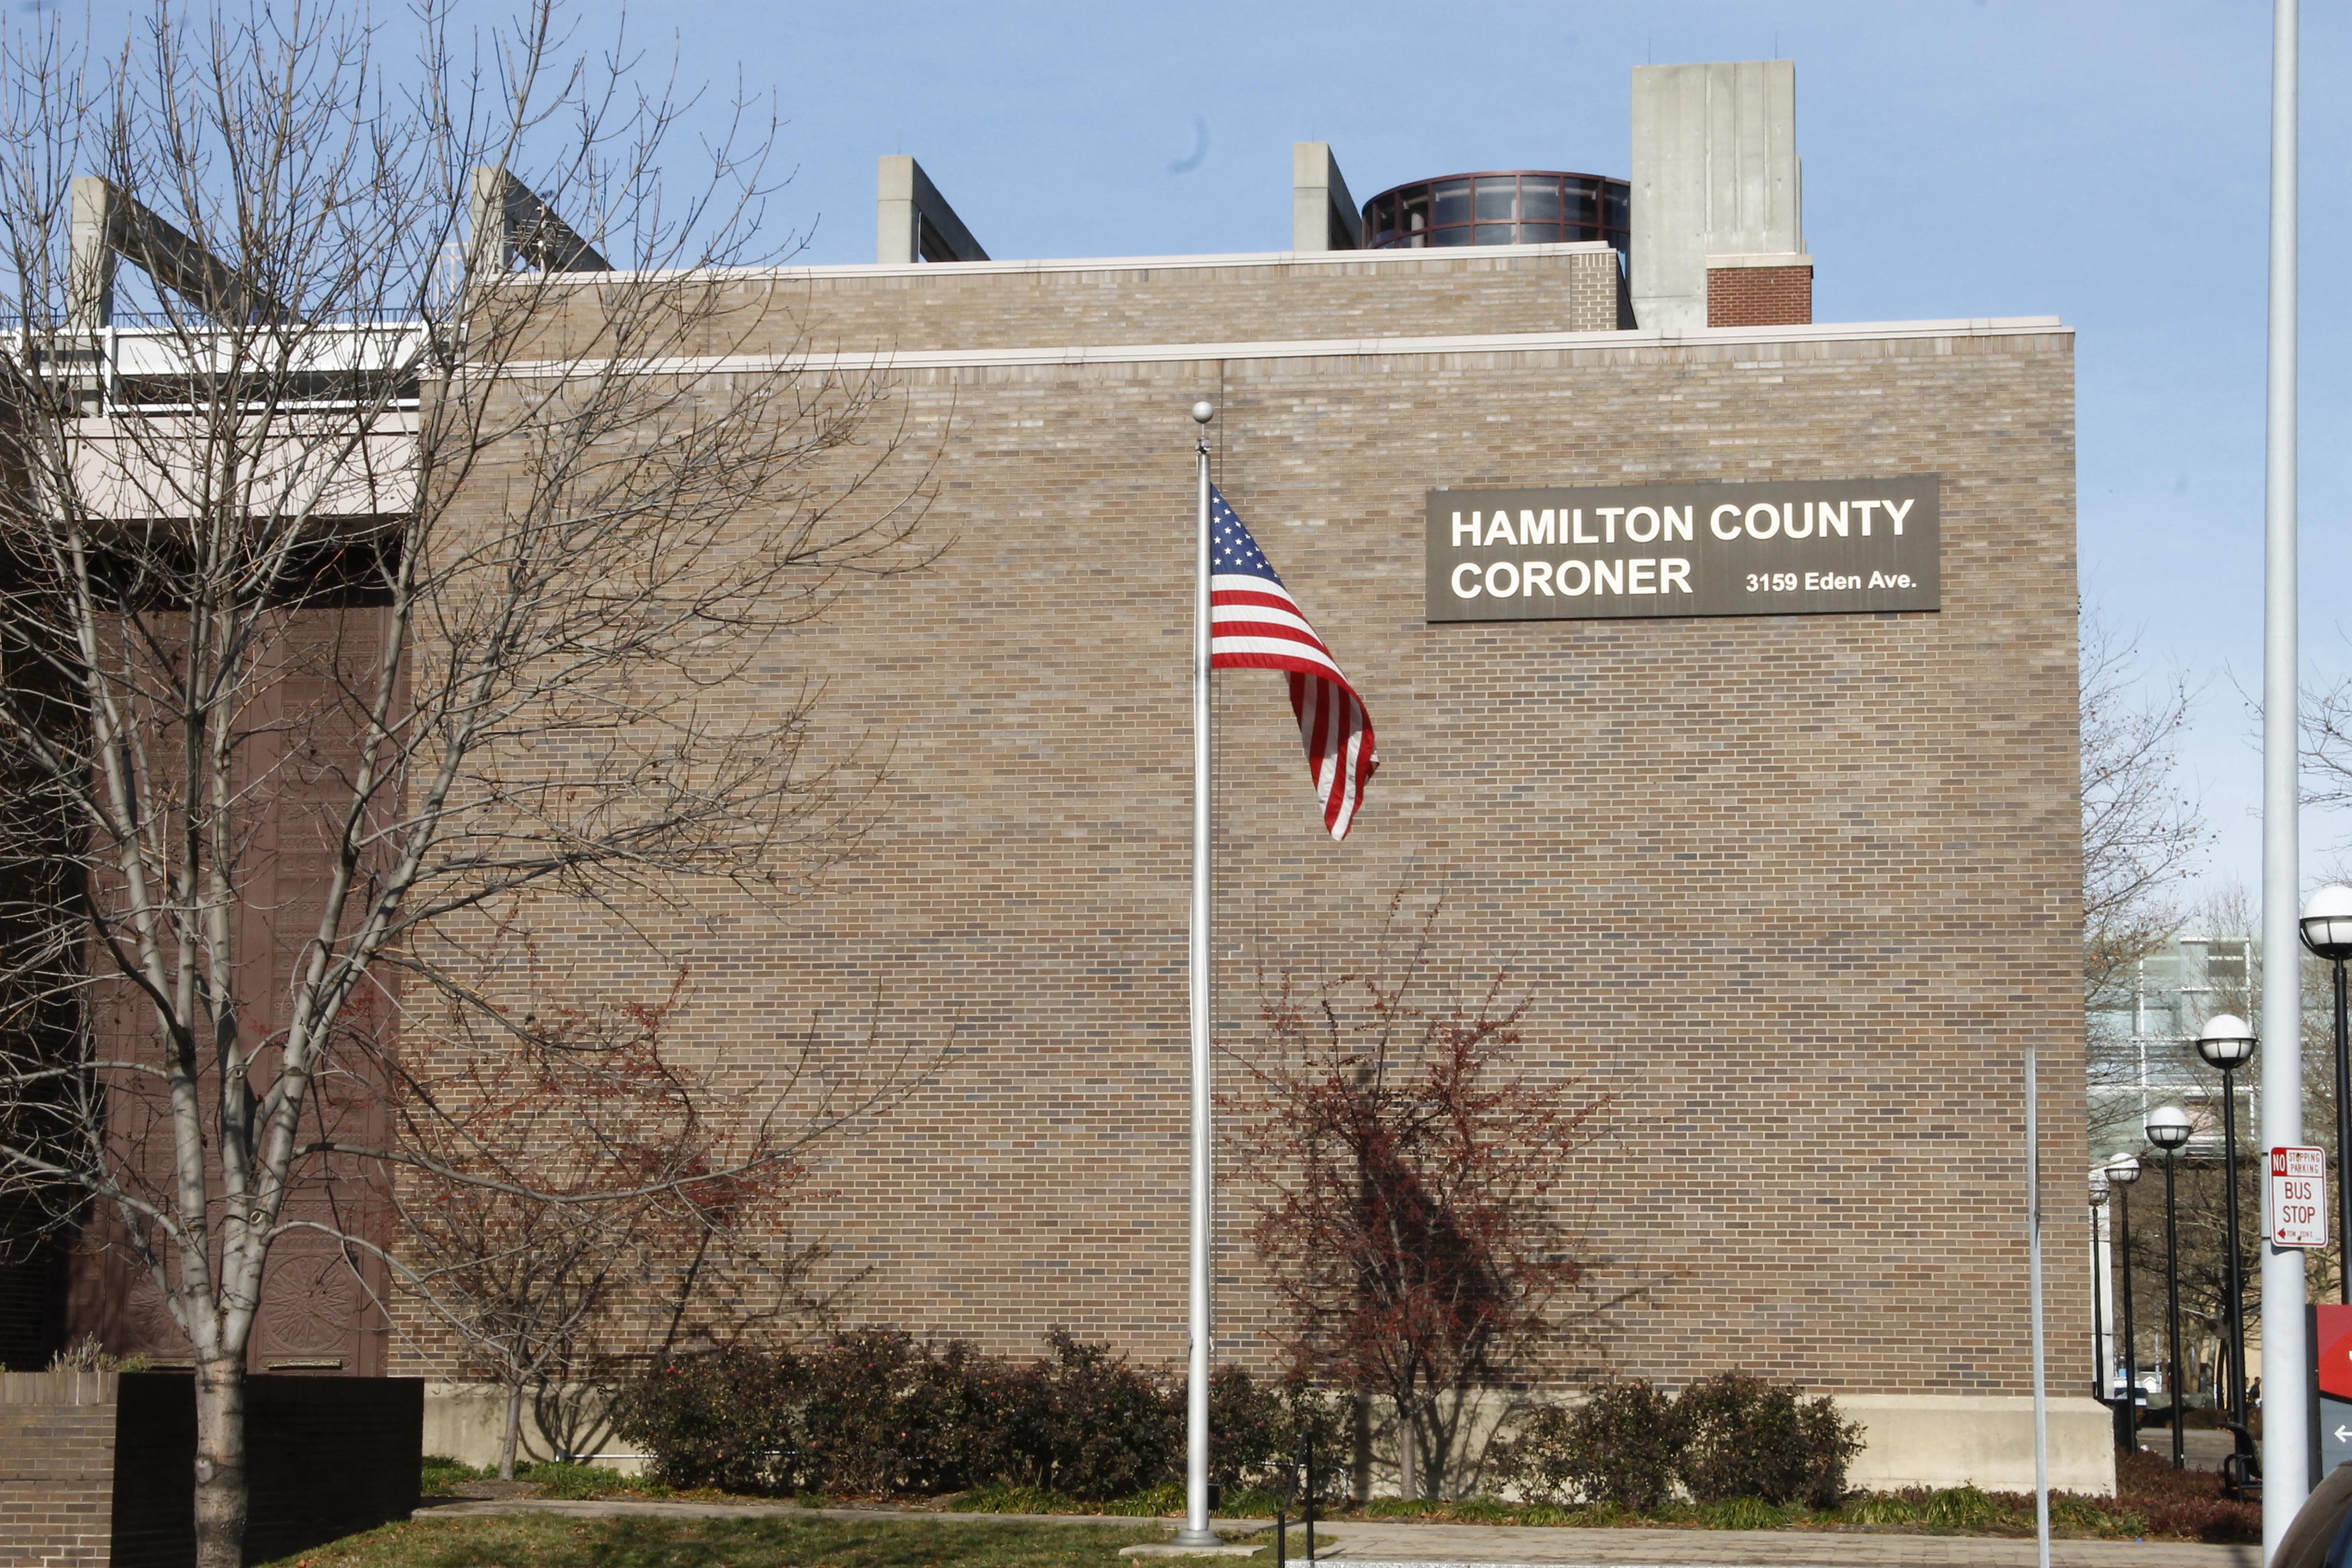 Chilling (but good) news for Hamilton County Coroner | WVXU